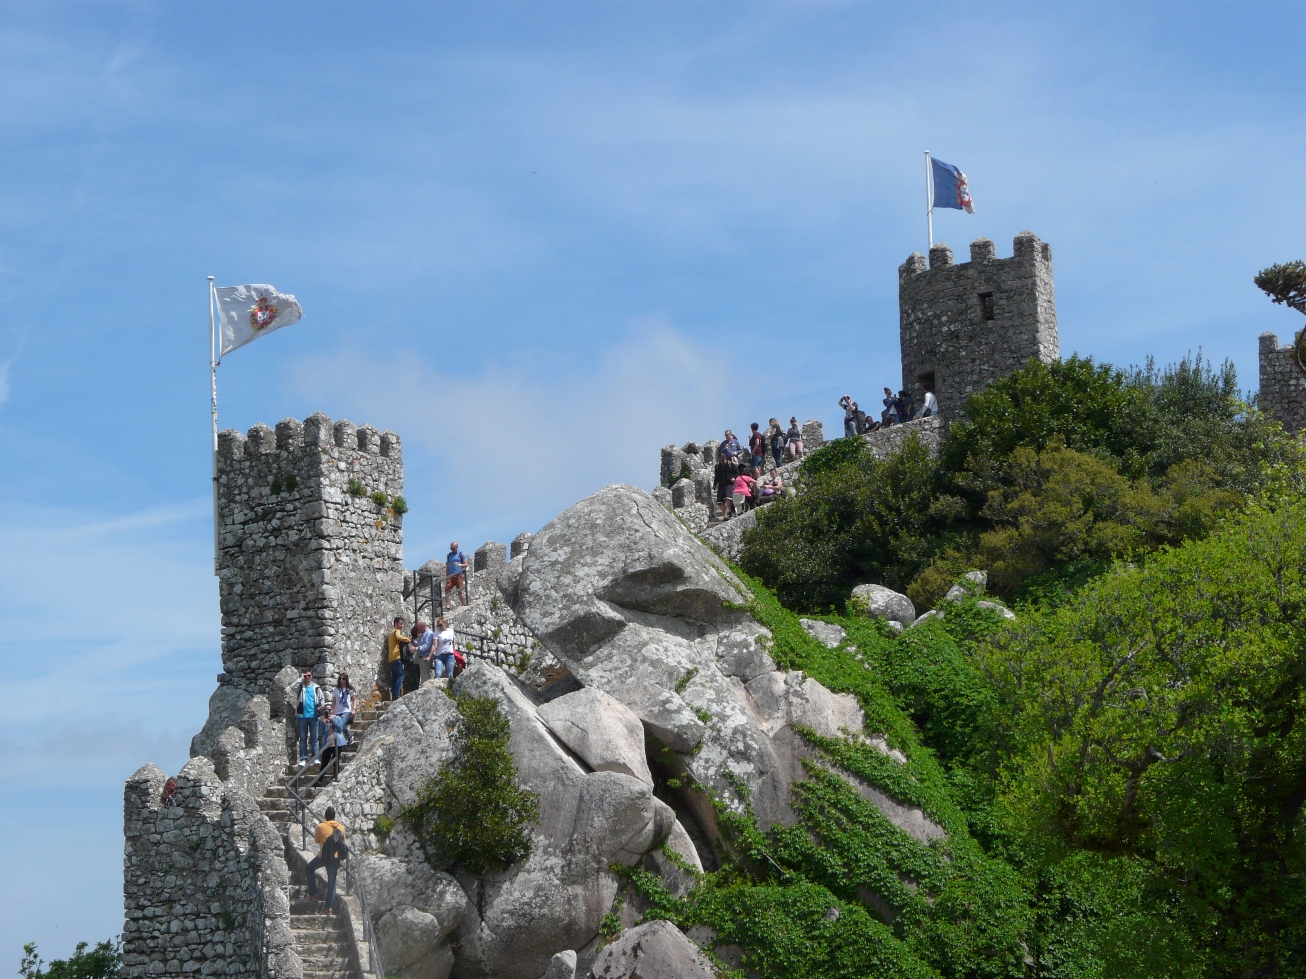 Picture 8, Castelo dos Mouros, Sintra, Portugal